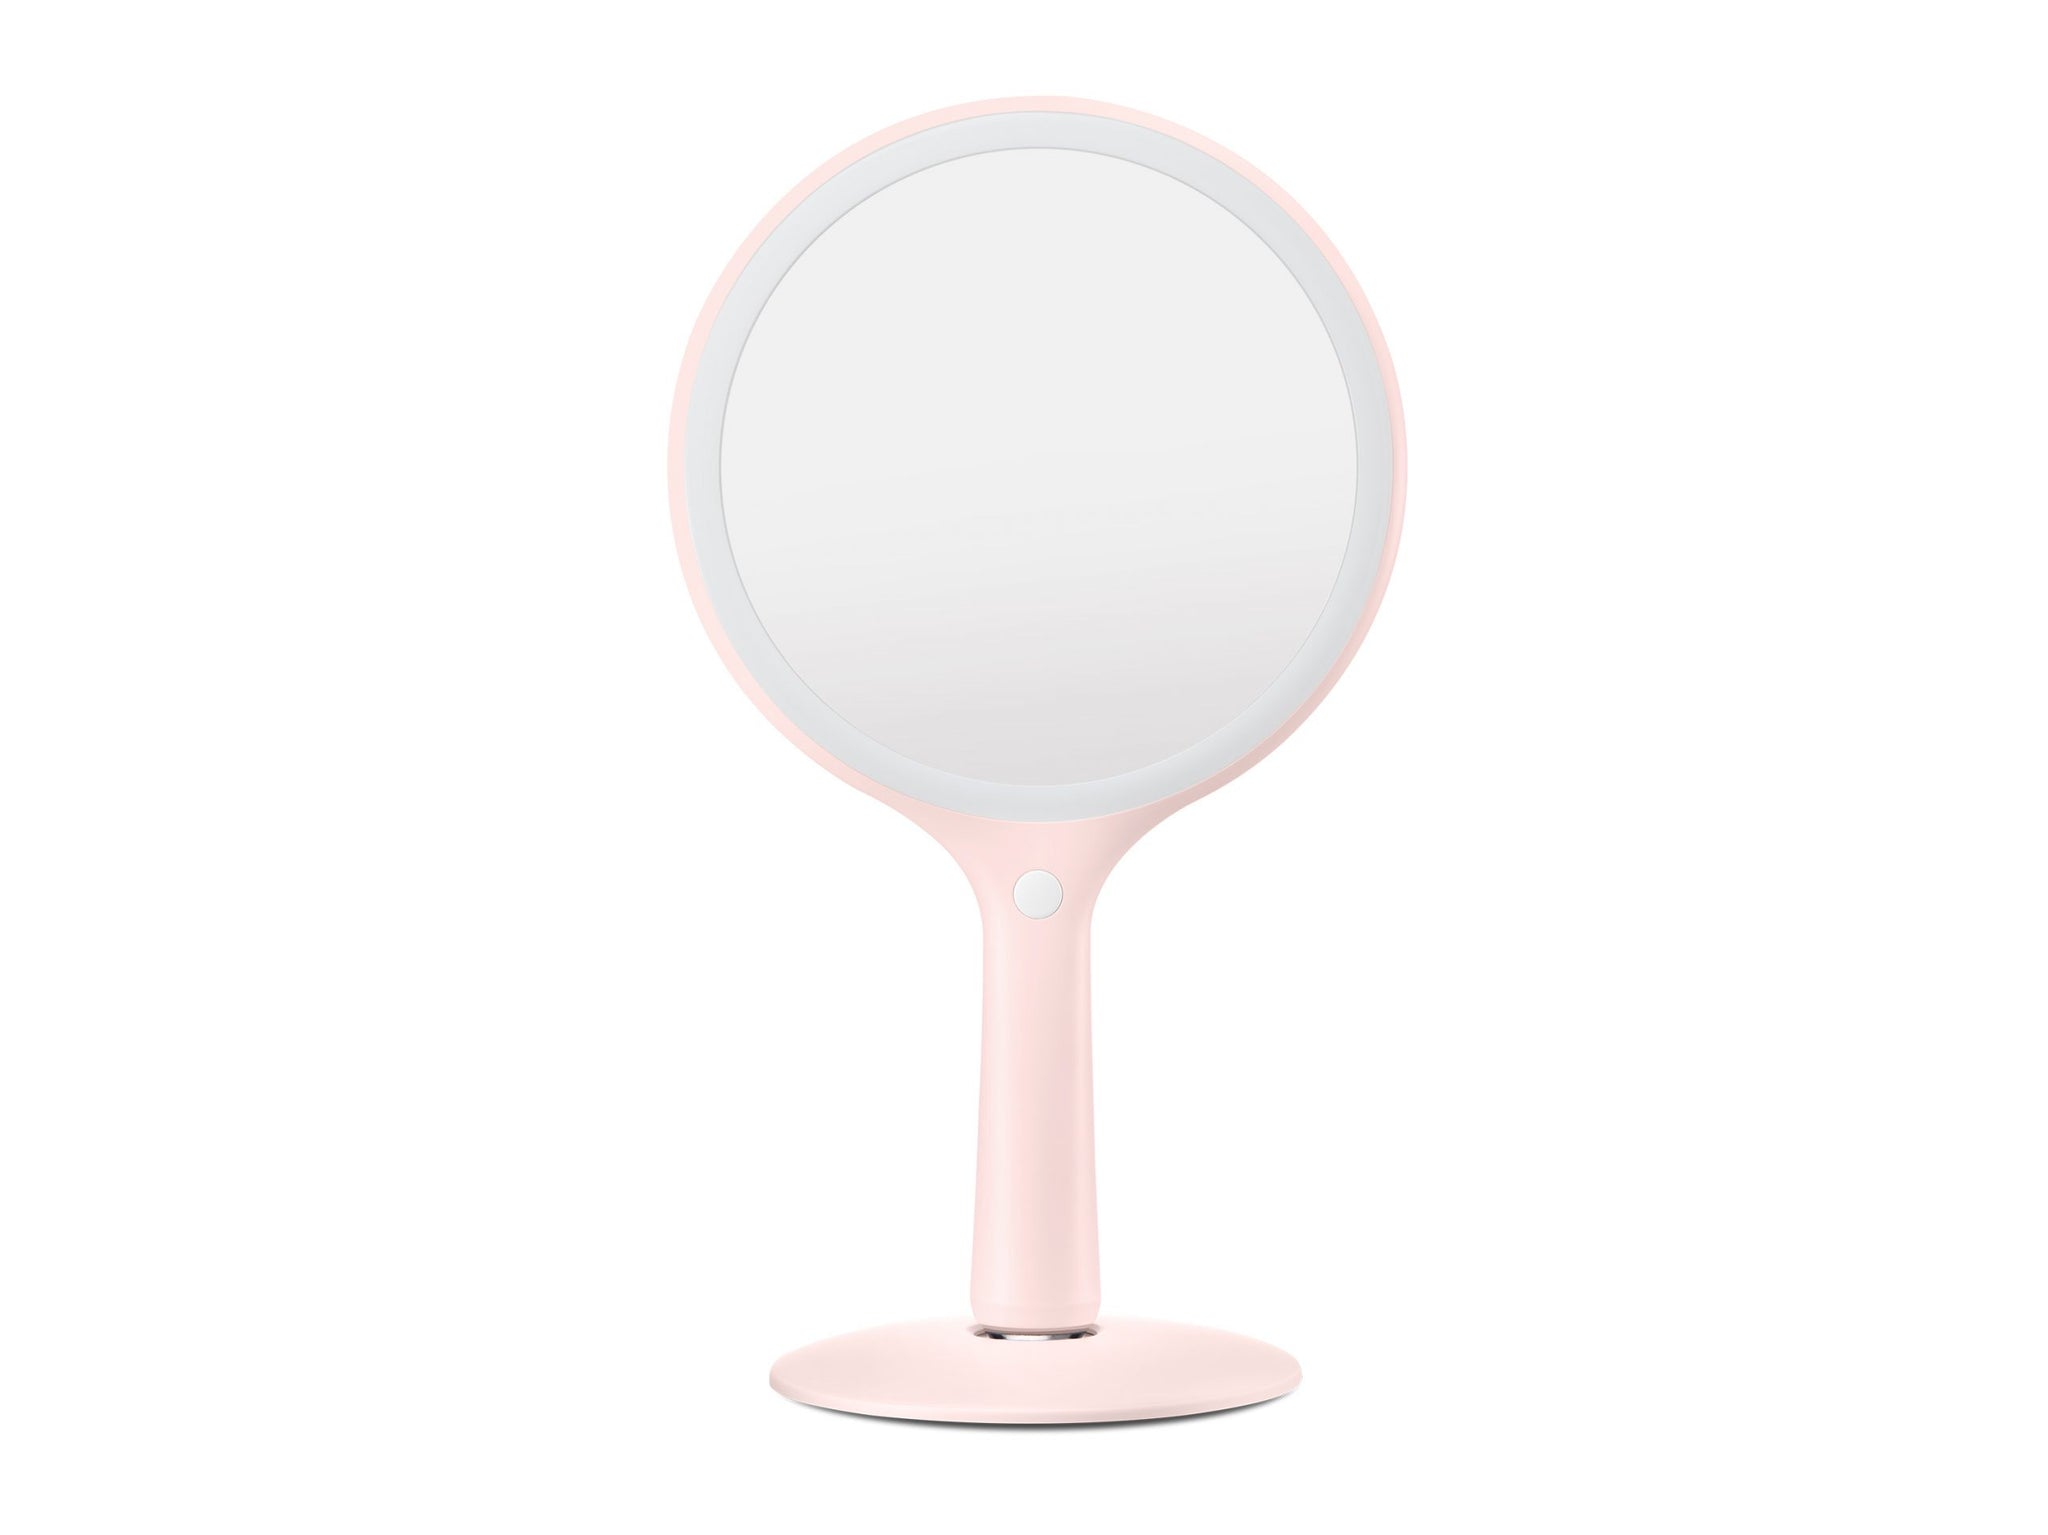 Hypnotek YOYO MIRROR 360°rotation Universal magnetic suction and led around mirror